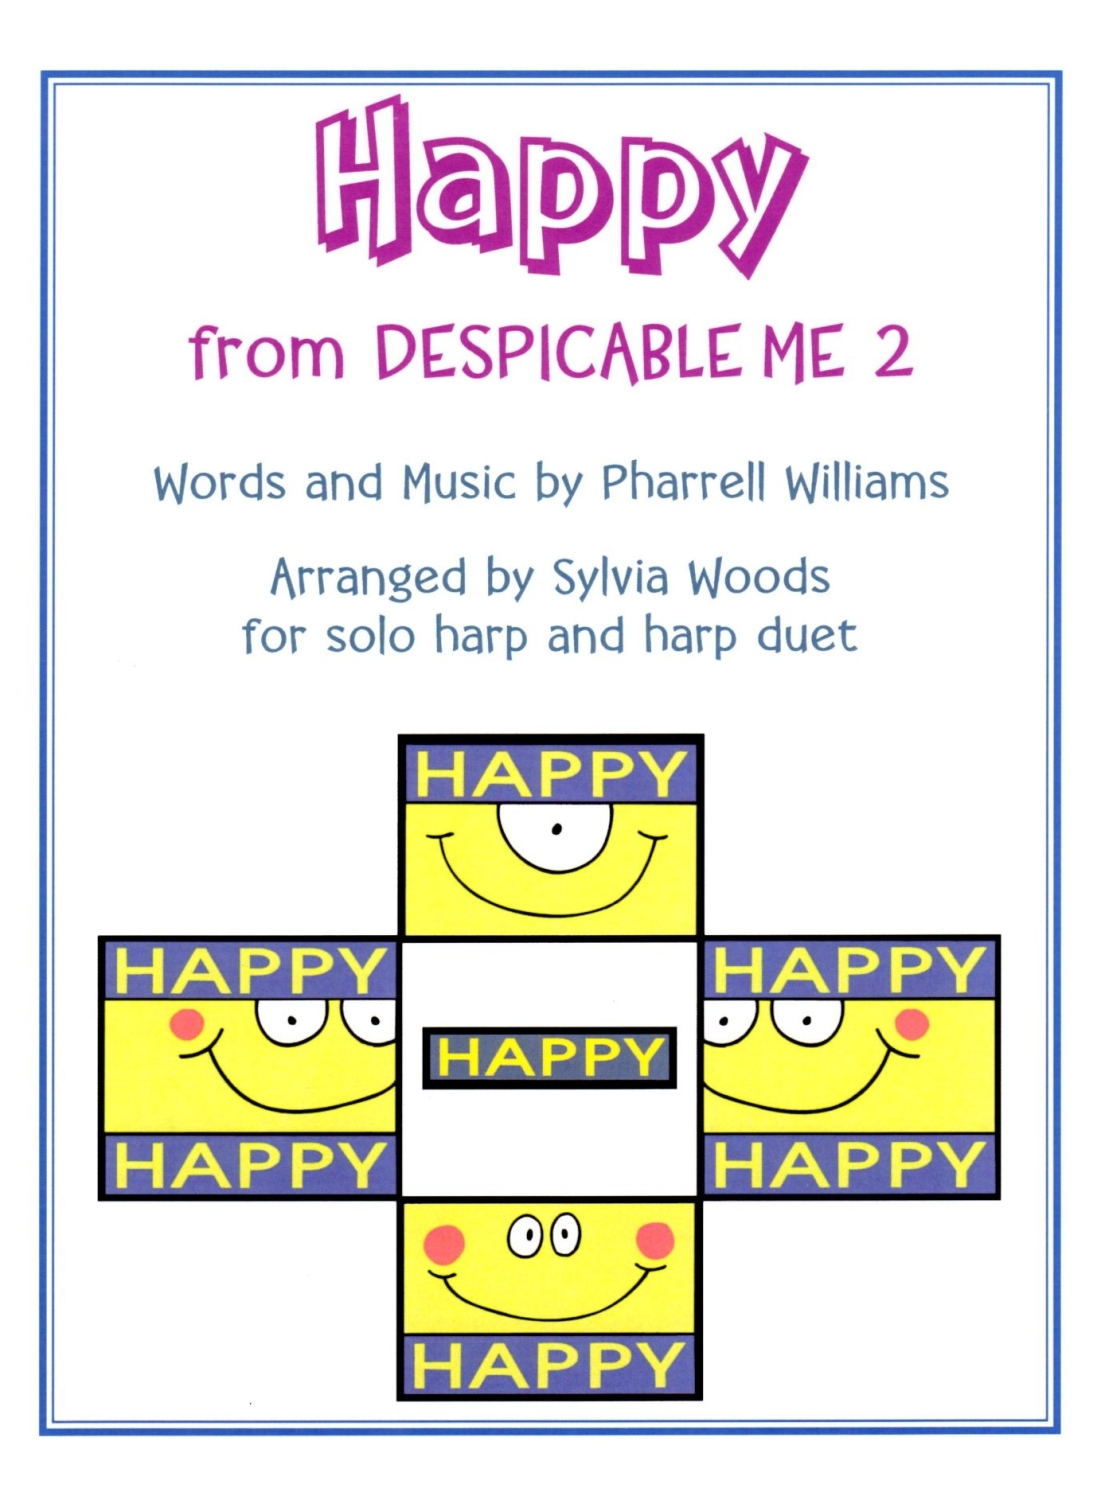 HAPPY - from Despicable Me 2 - Pharrell Williams